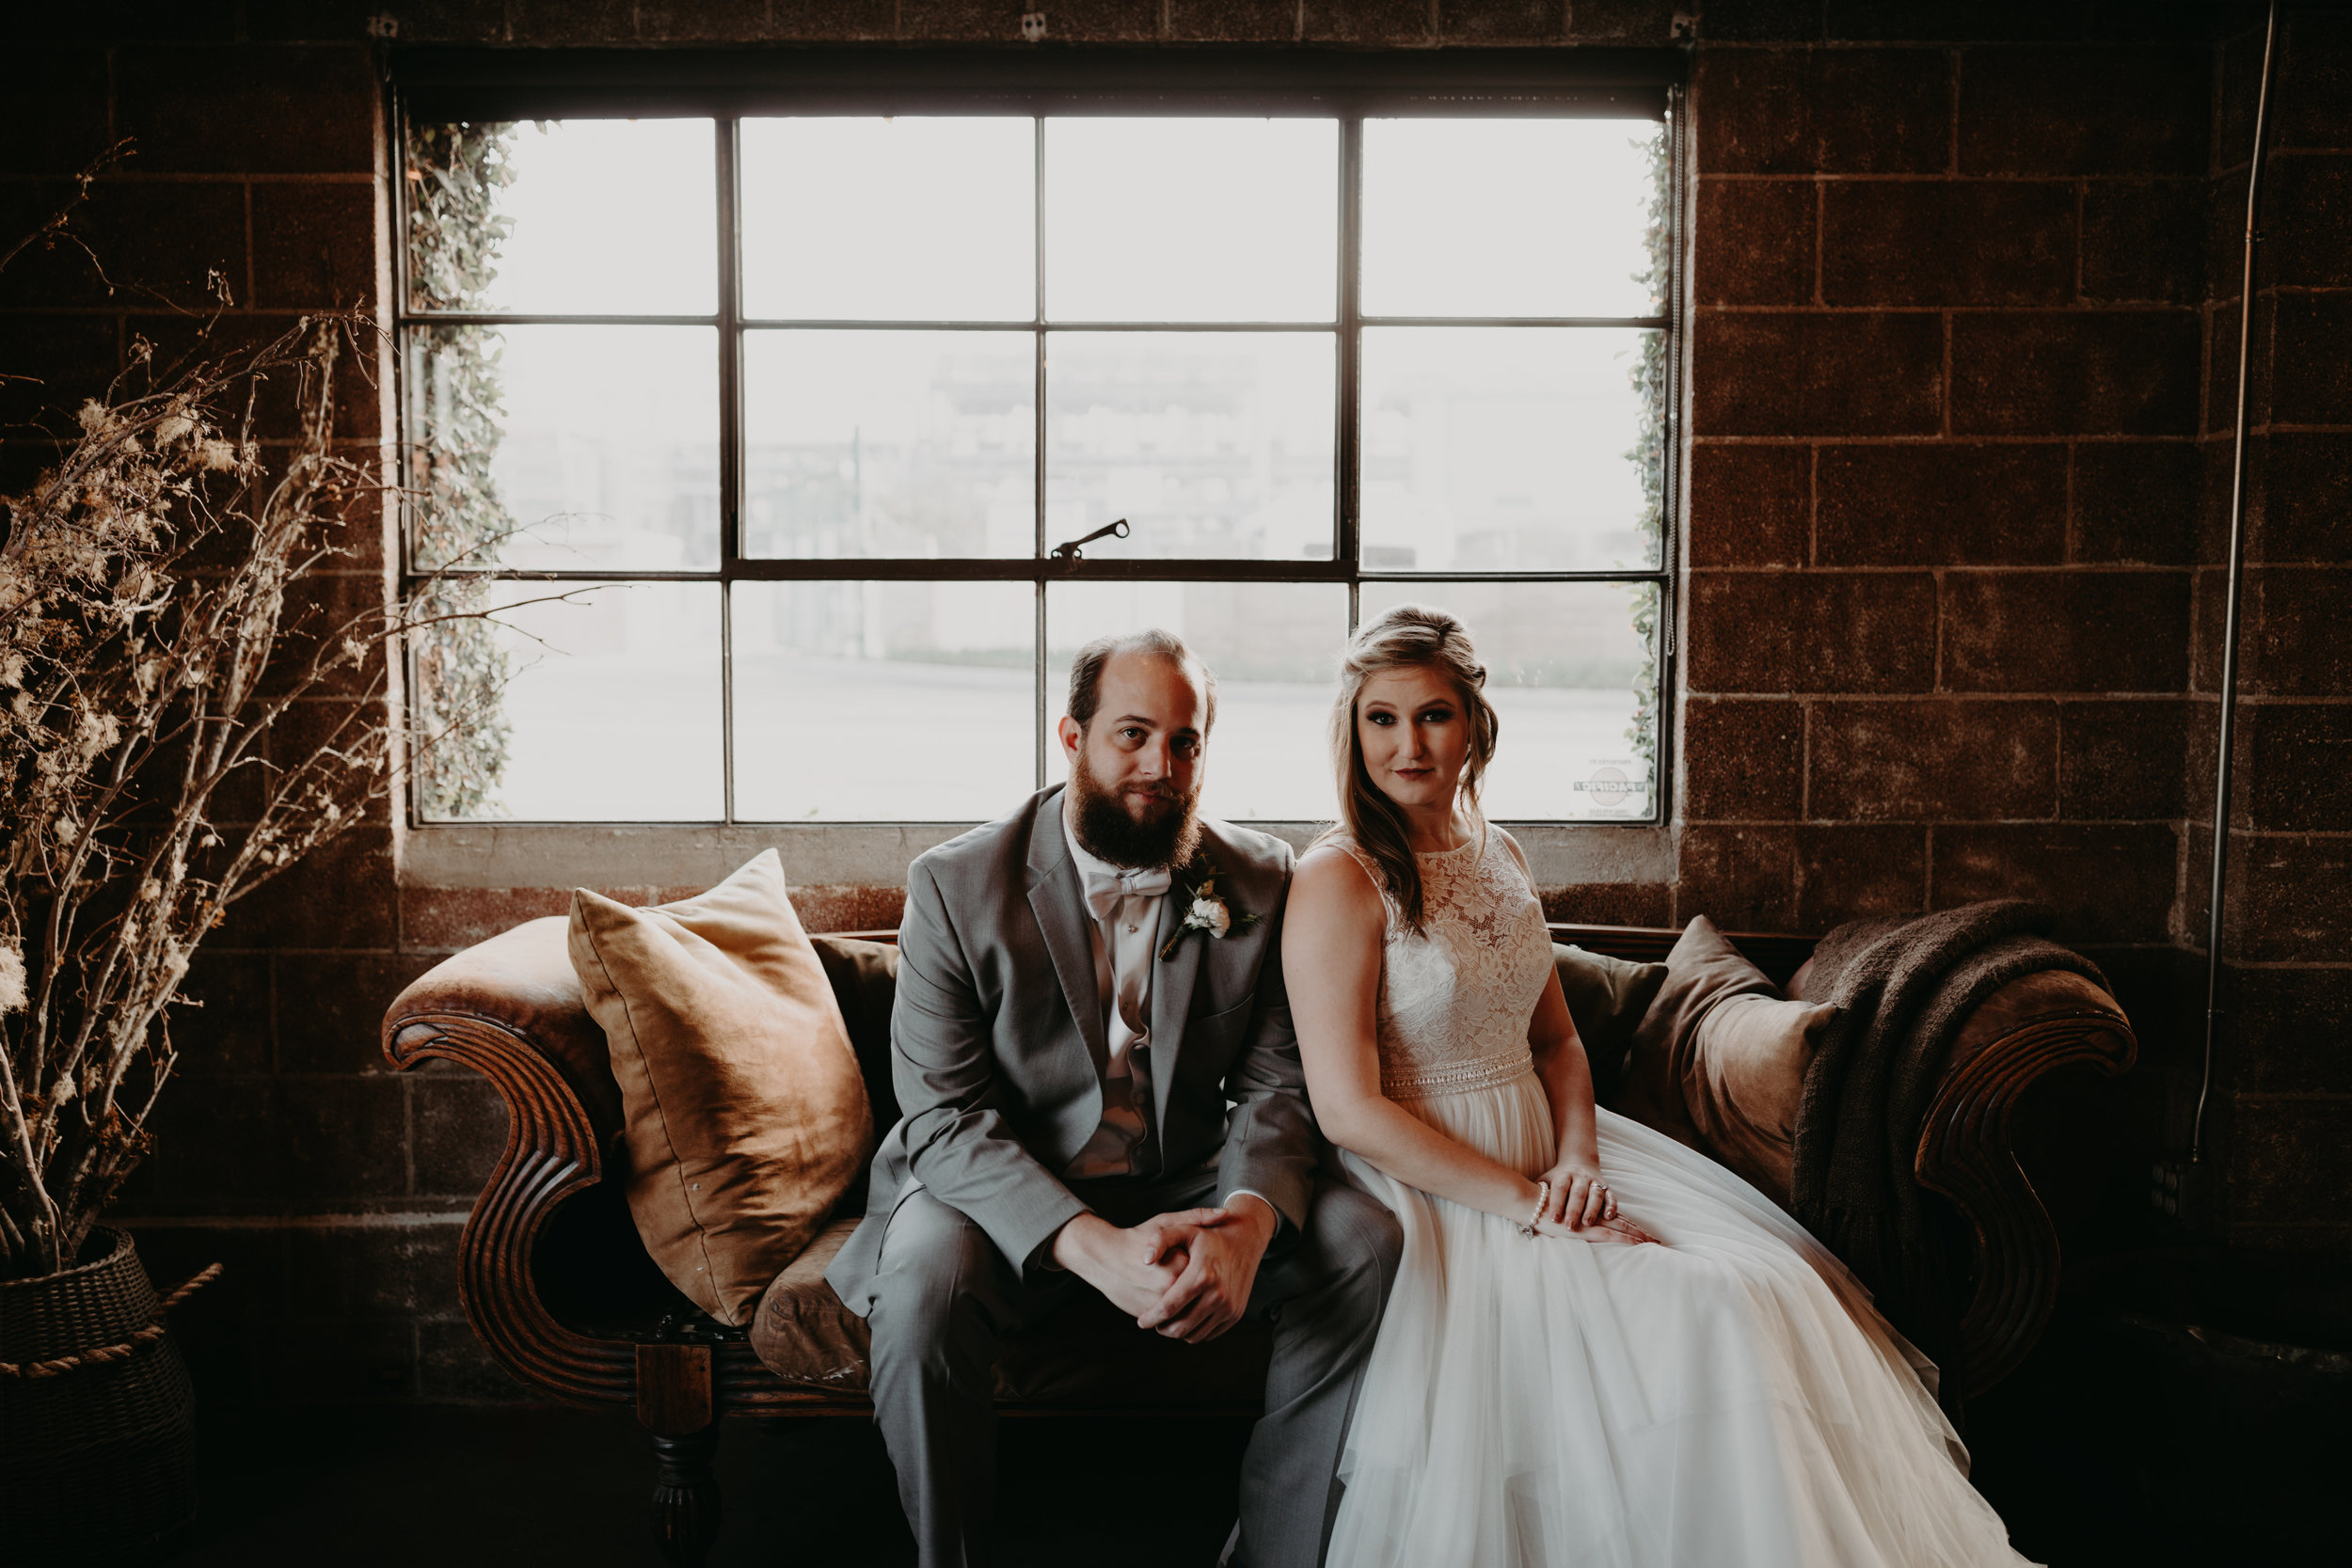 Smoky Hollow Studios Wedding Anne & Lewis Emily Magers Photography-493.jpg